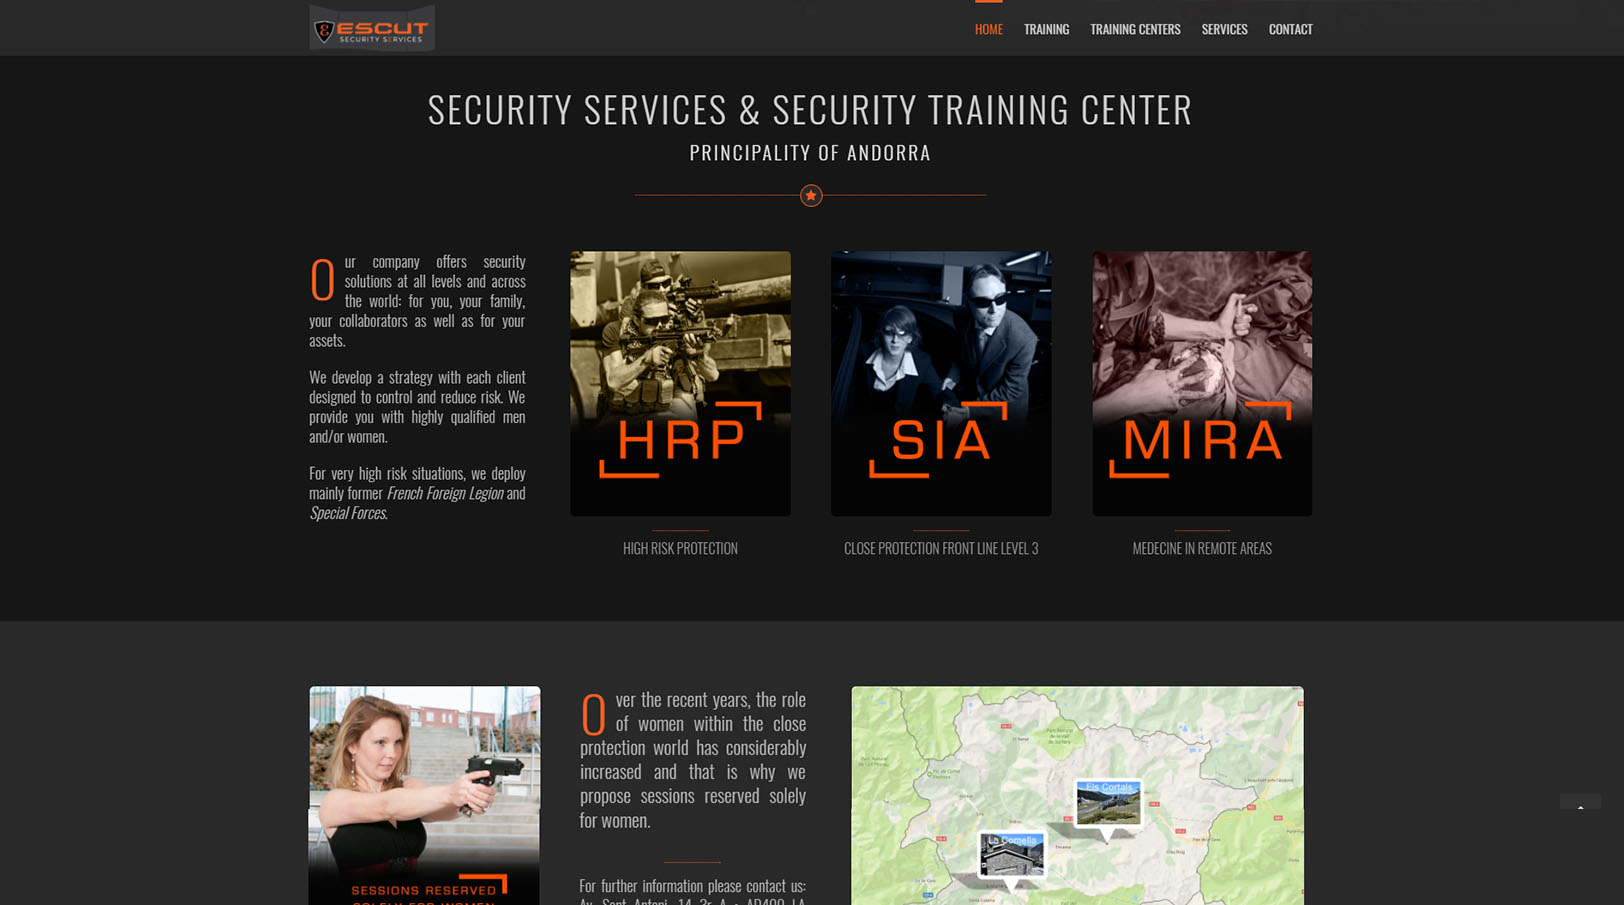 Security Services Training Center Andorra MIRA, SIA, HRP